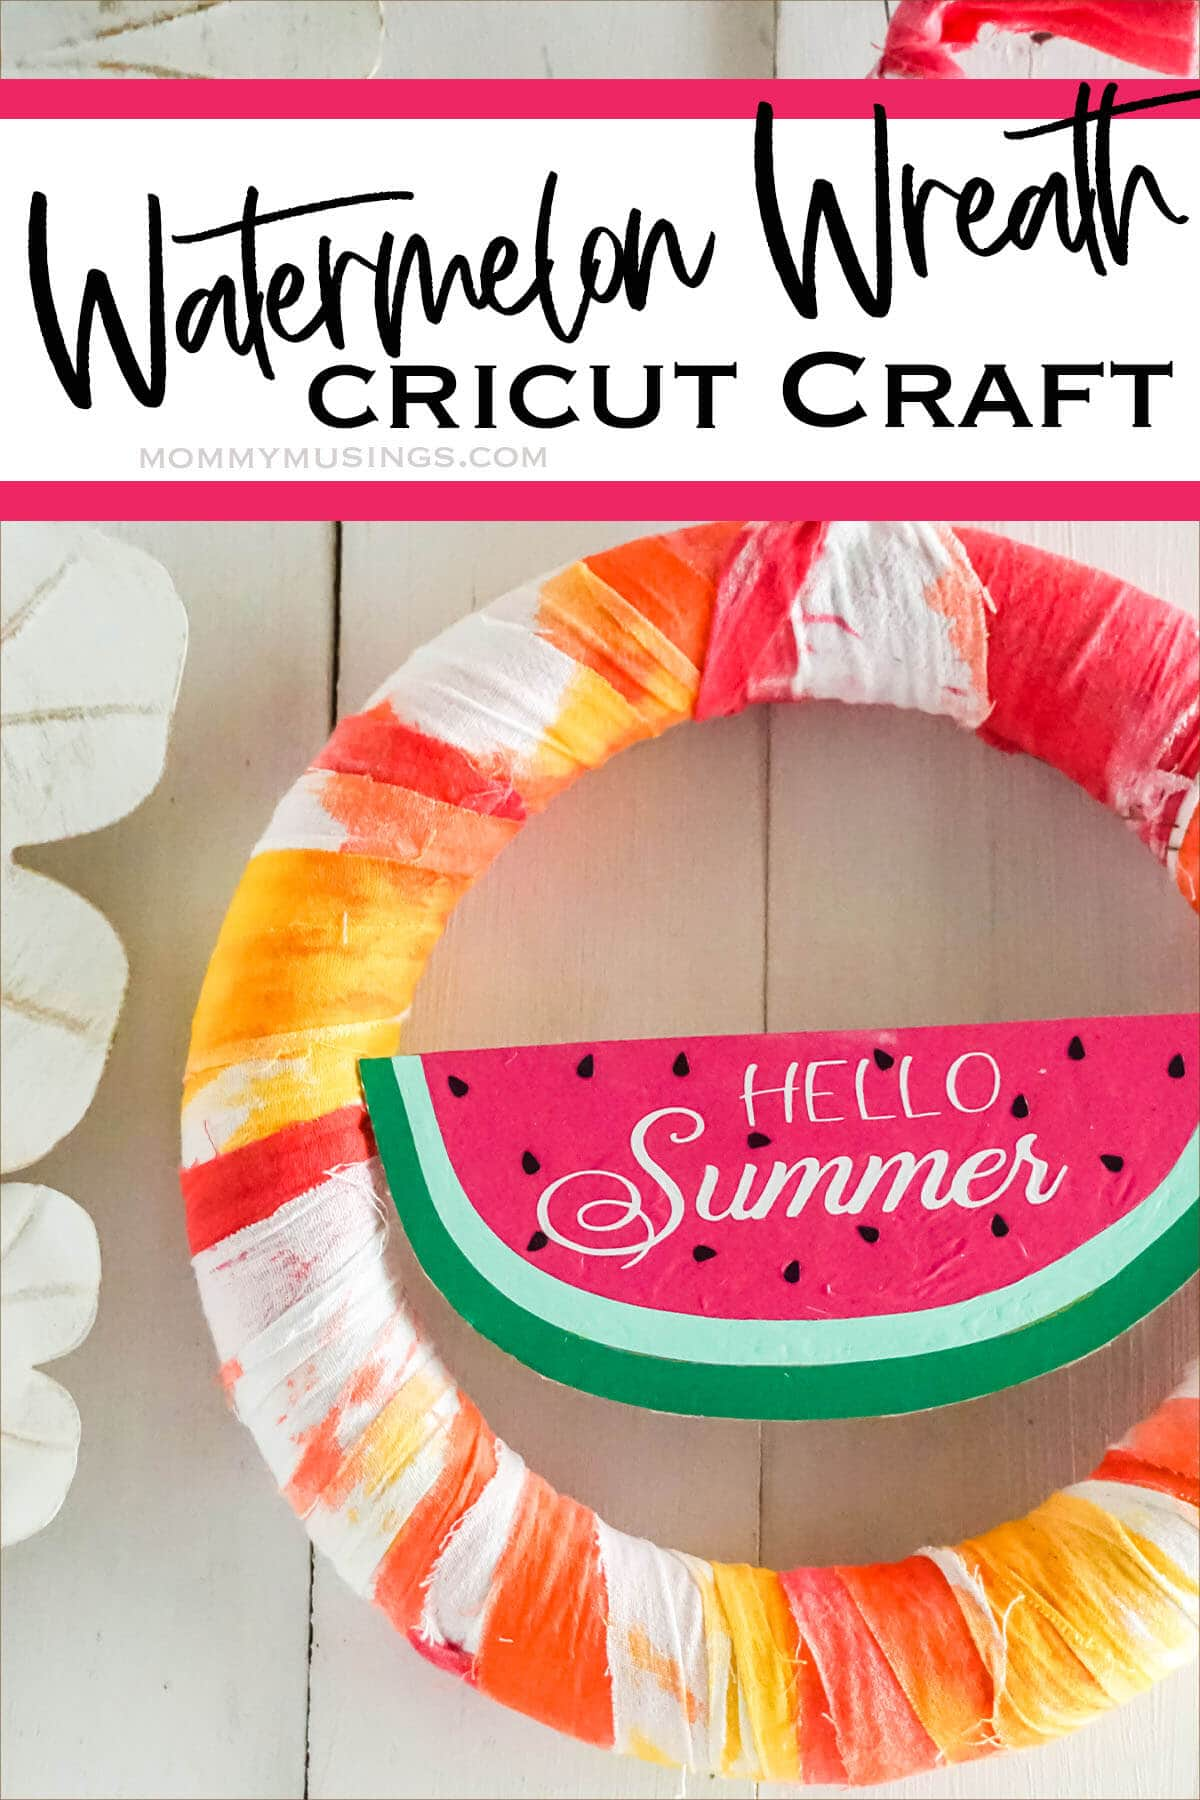 easy summer wreath with text which reads watermelon wreath cricut craft